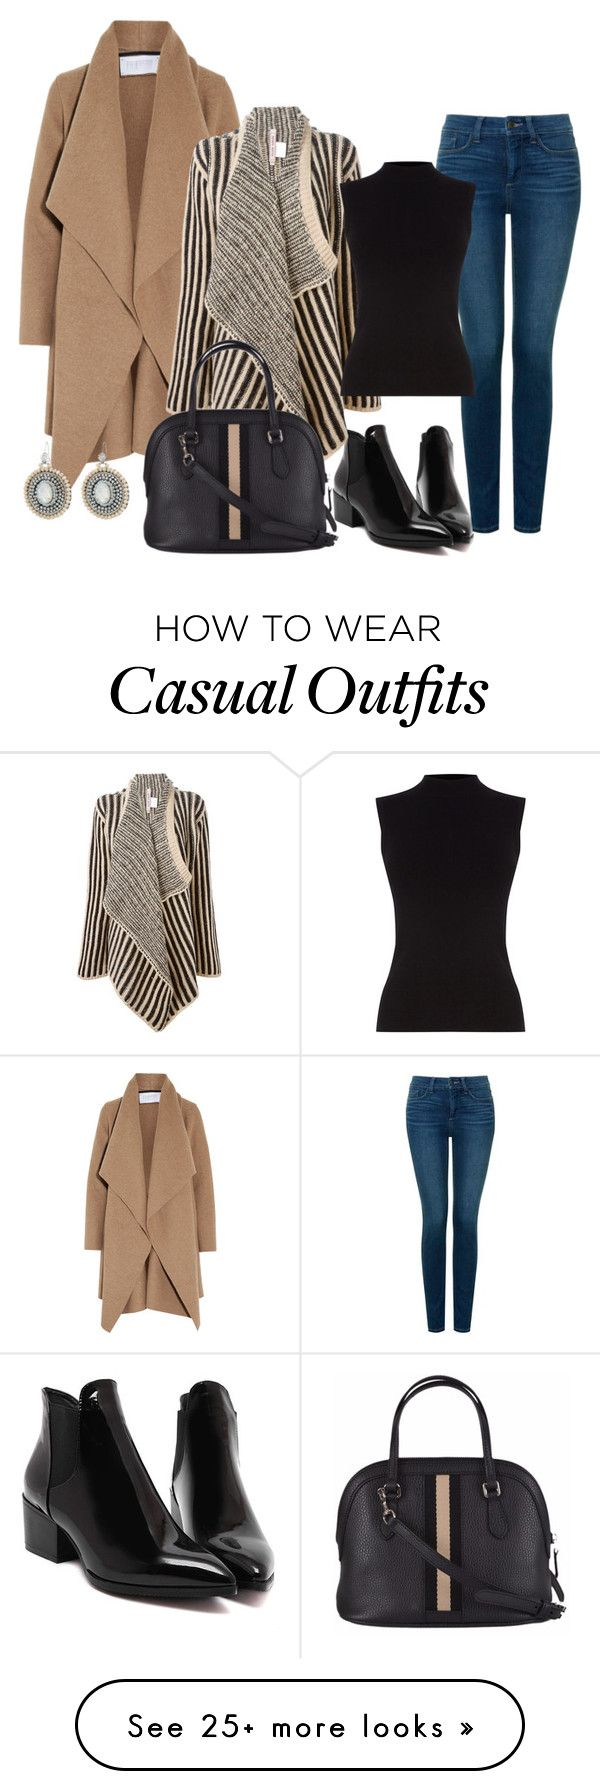 """casual day"" by bsimon623 on Polyvore featuring Harris Wharf London, NYDJ, Antonio Marras, Oasis, Gucci, Gypsy SOULE, women's clothing, women's fashion, women and female"